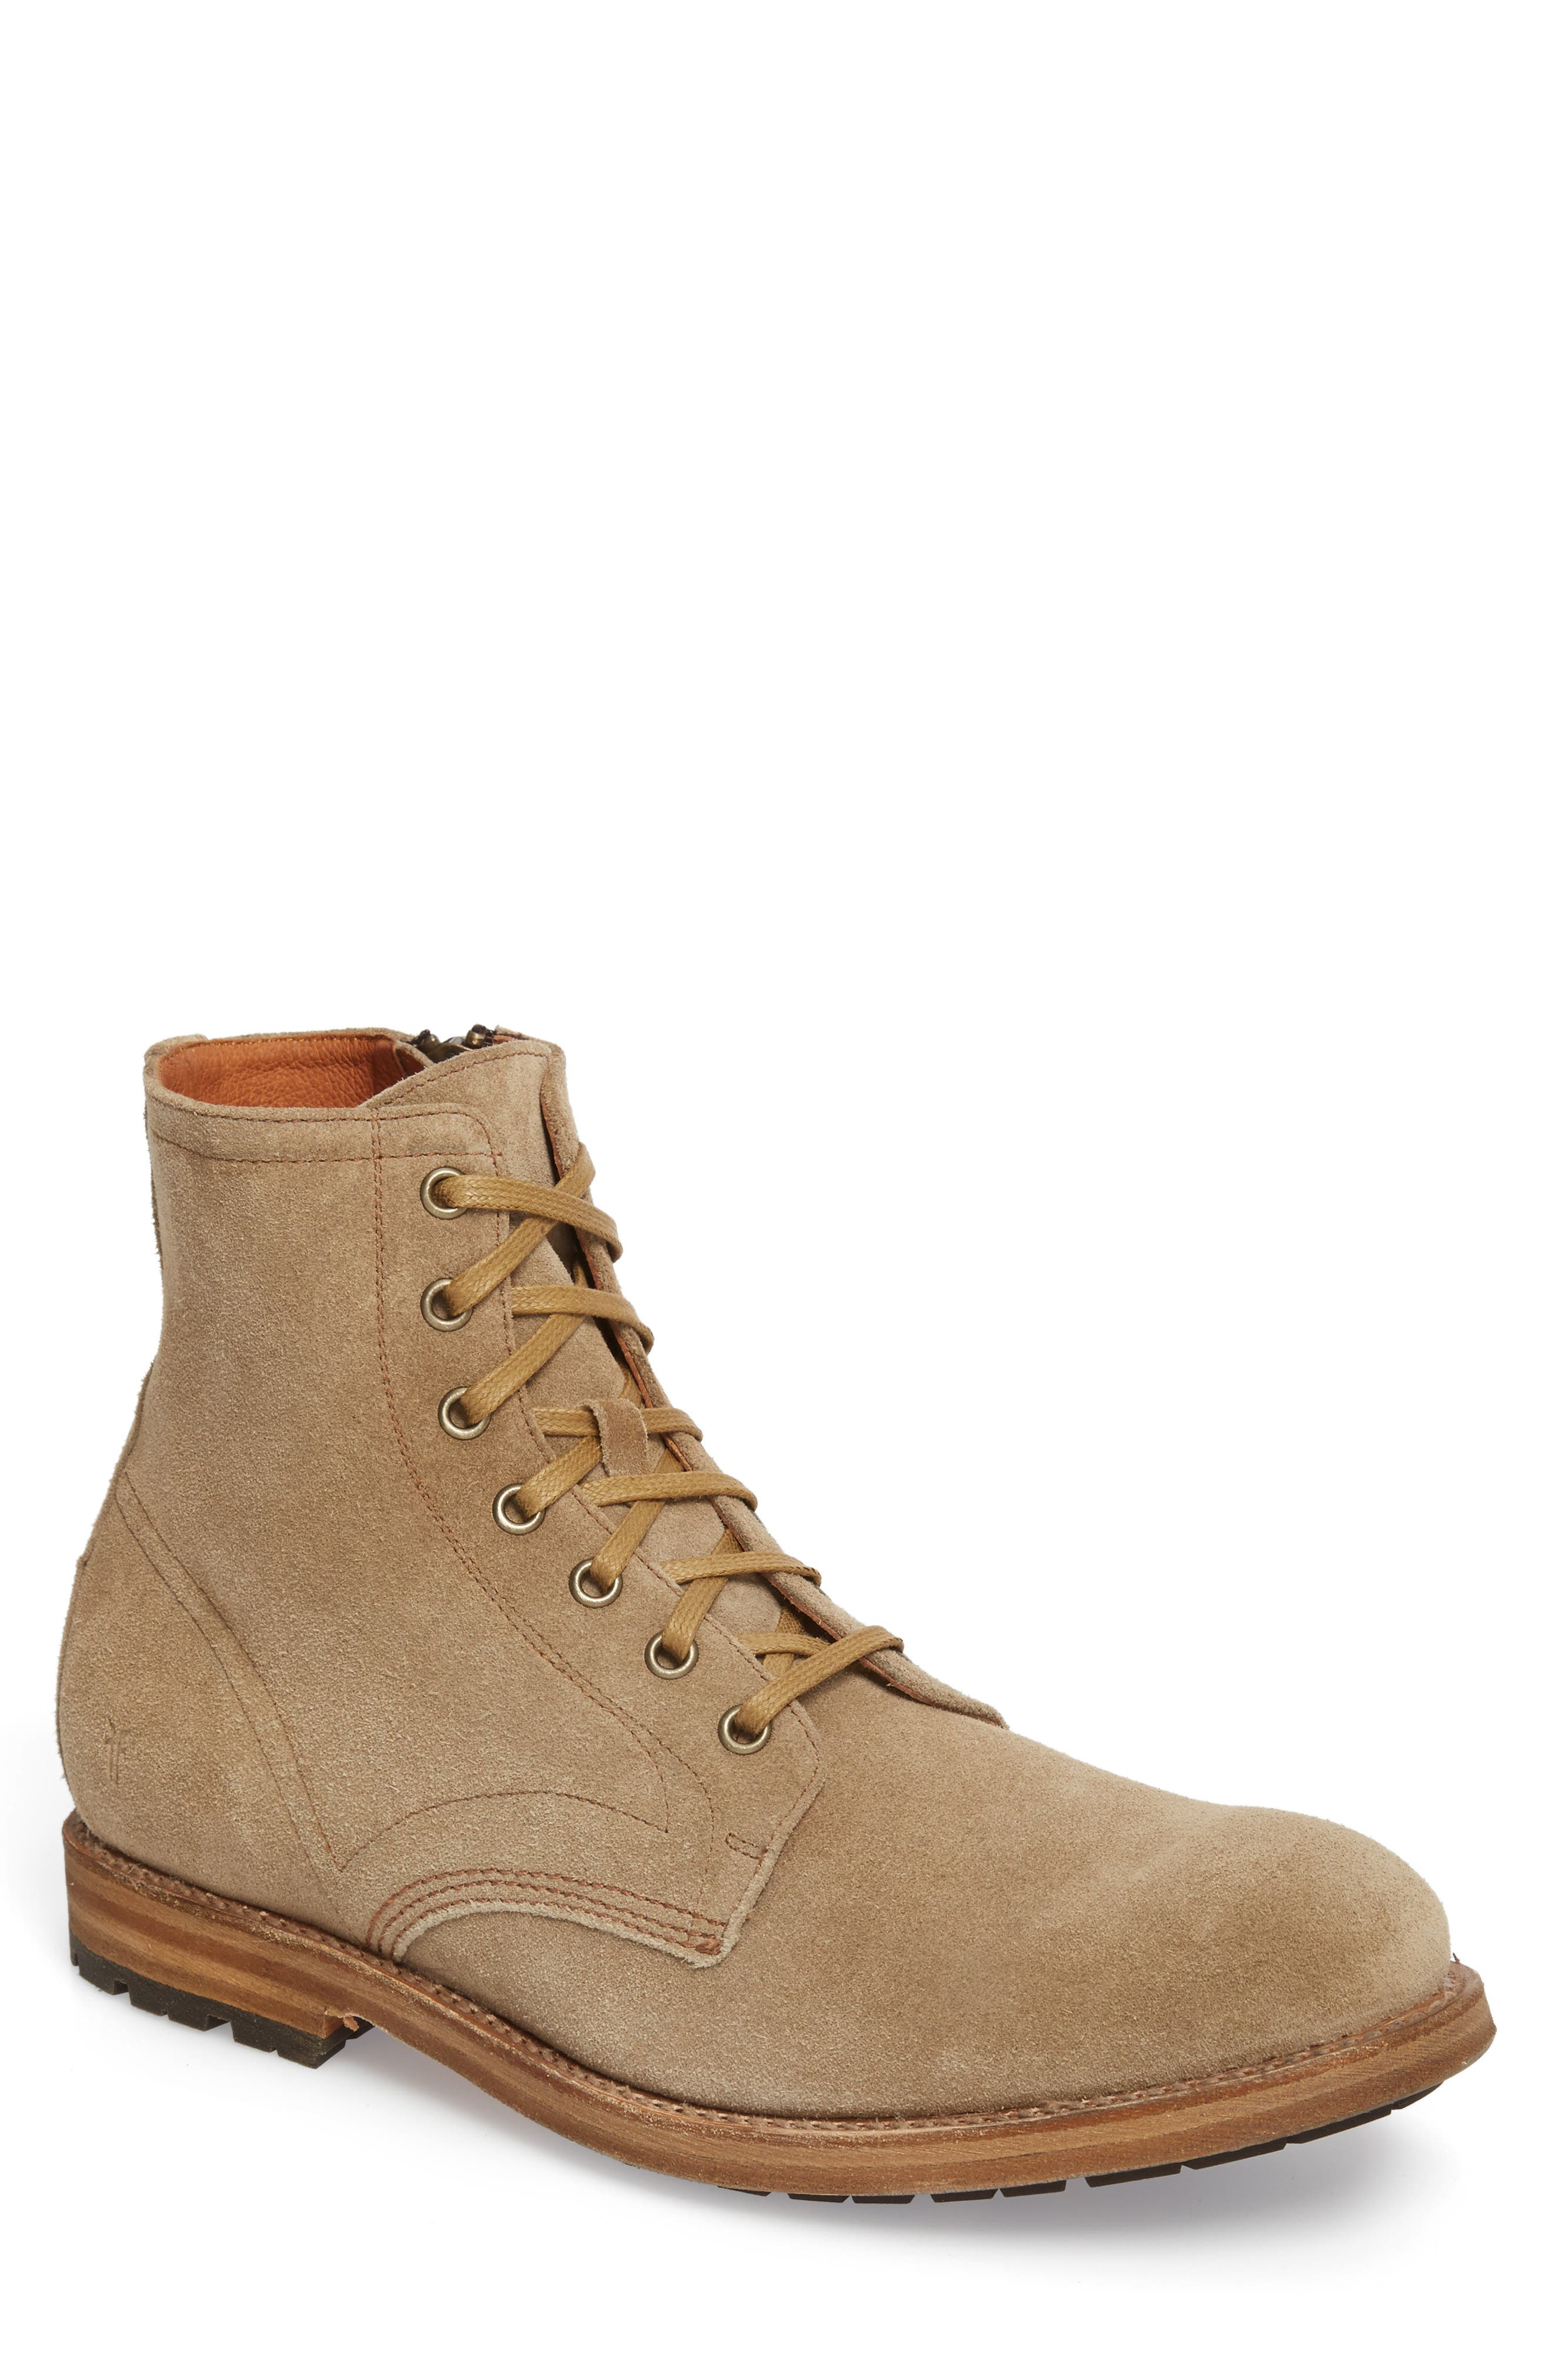 Fry Bowery Side Zip Combat Boot,                         Main,                         color, Ash Suede